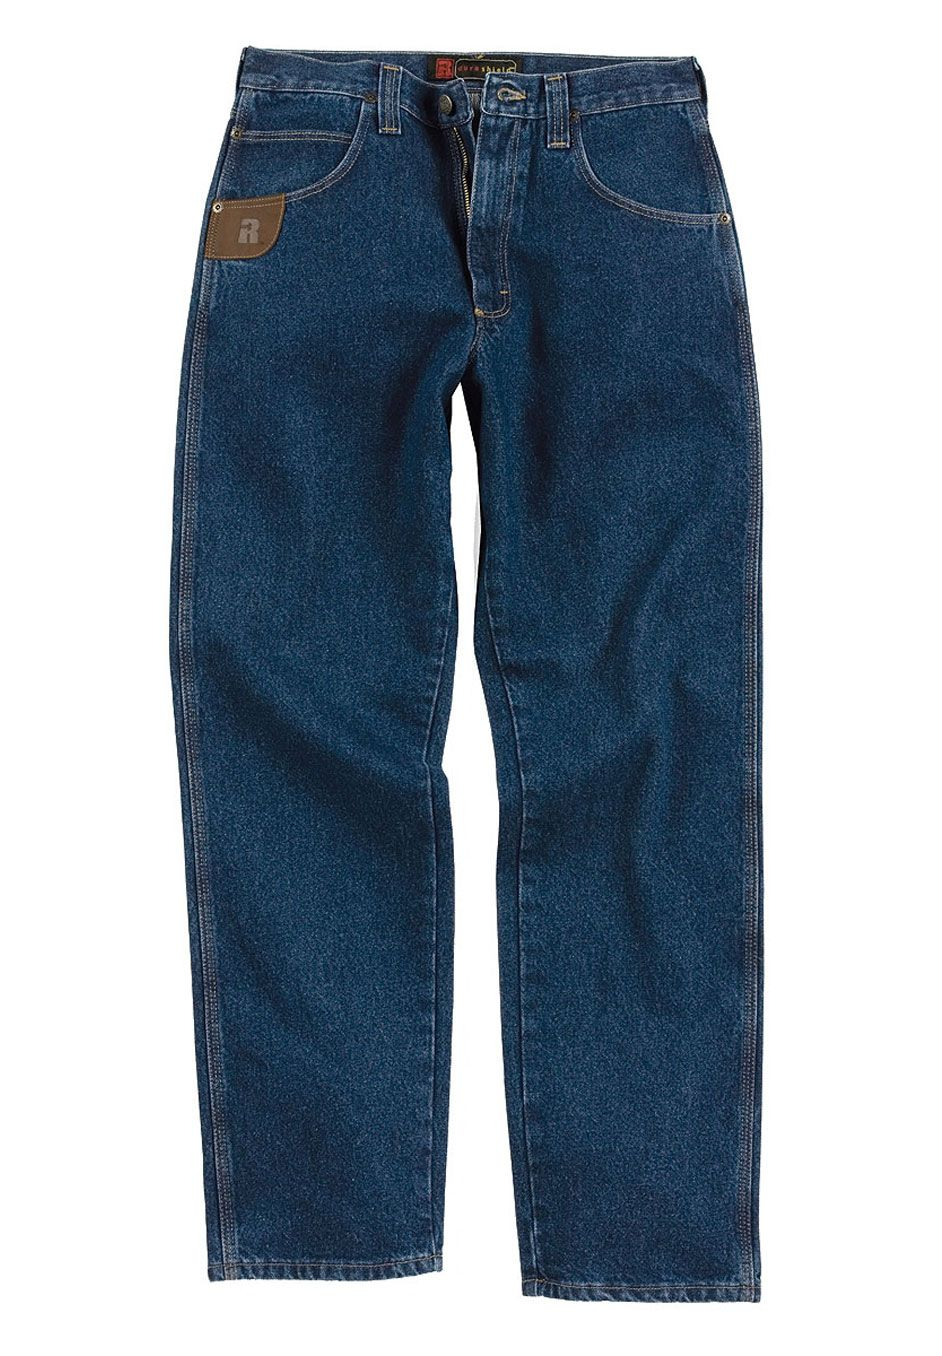 5-Pocket Classic Jeans by Wrangler®,